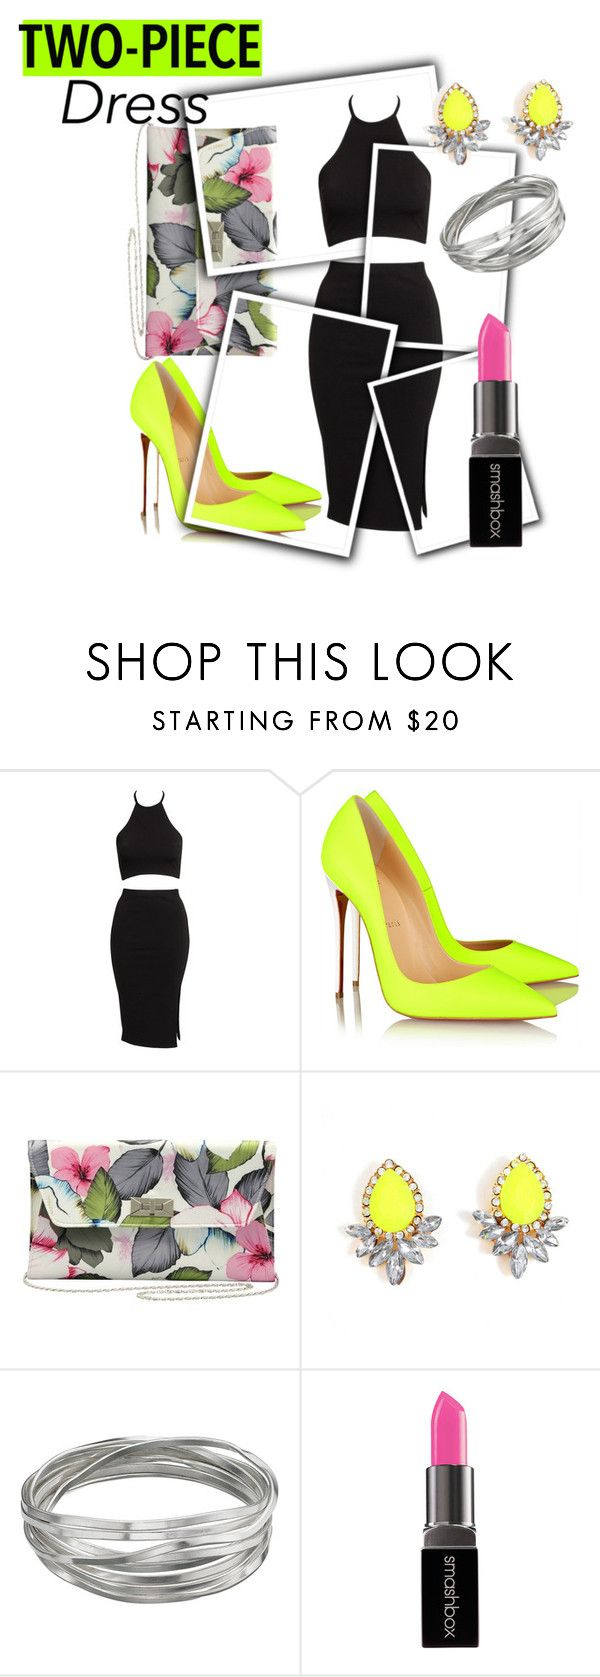 Two Piece Dress by clareceq29 on Polyvore featuring Oneness, Christian Louboutin, M&Co, Whistles, Smashbox and Lovinglife